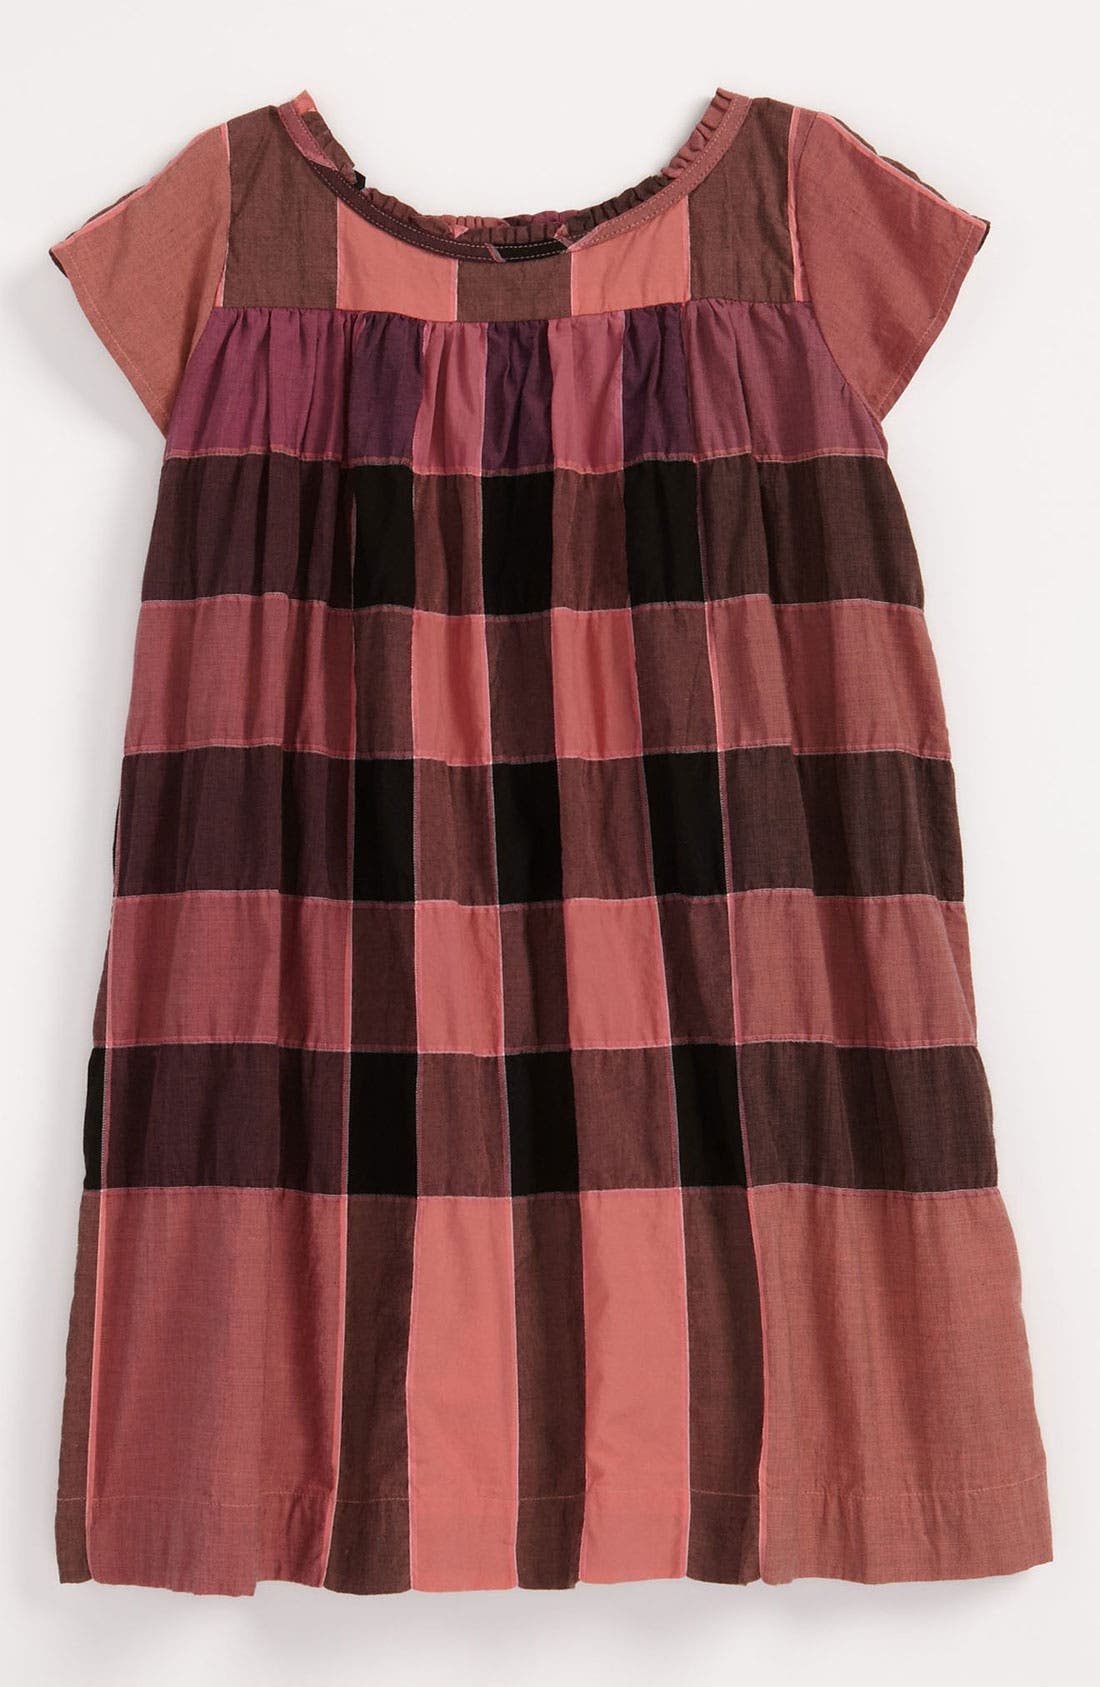 Alternate Image 1 Selected - Burberry Check Print Dress (Baby)